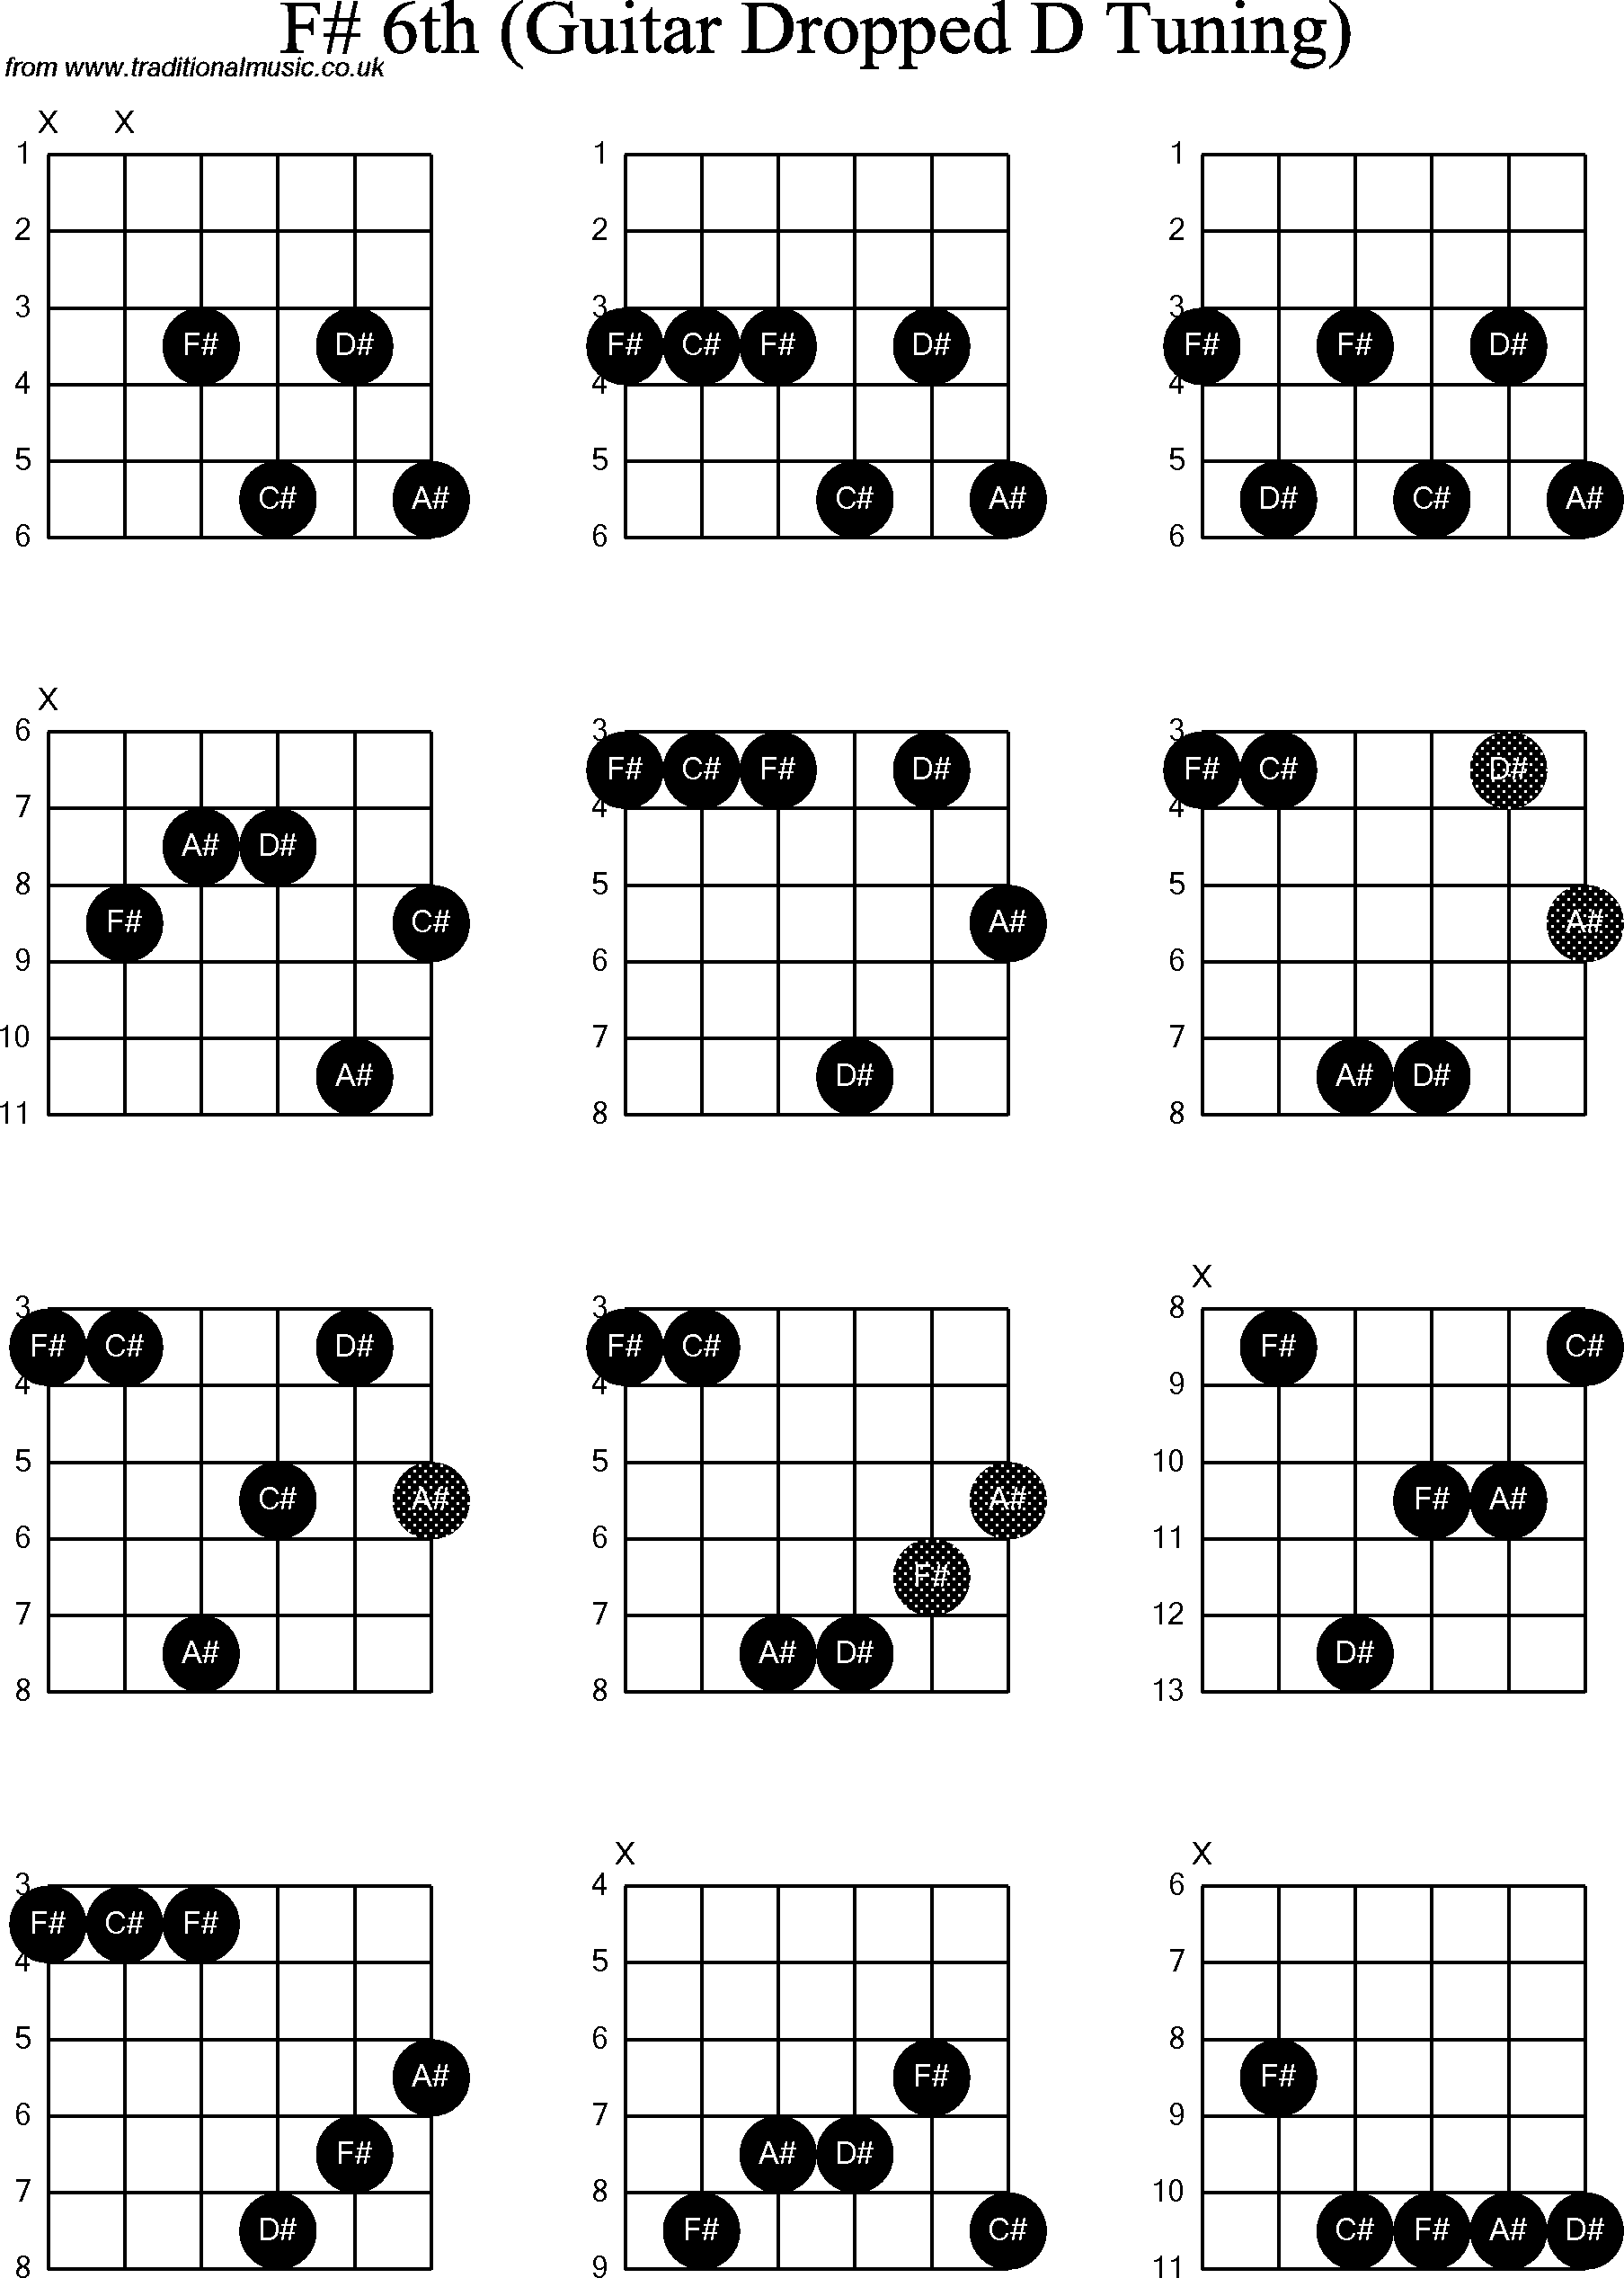 chord diagrams for dropped d guitar dadgbe   f sharp6th